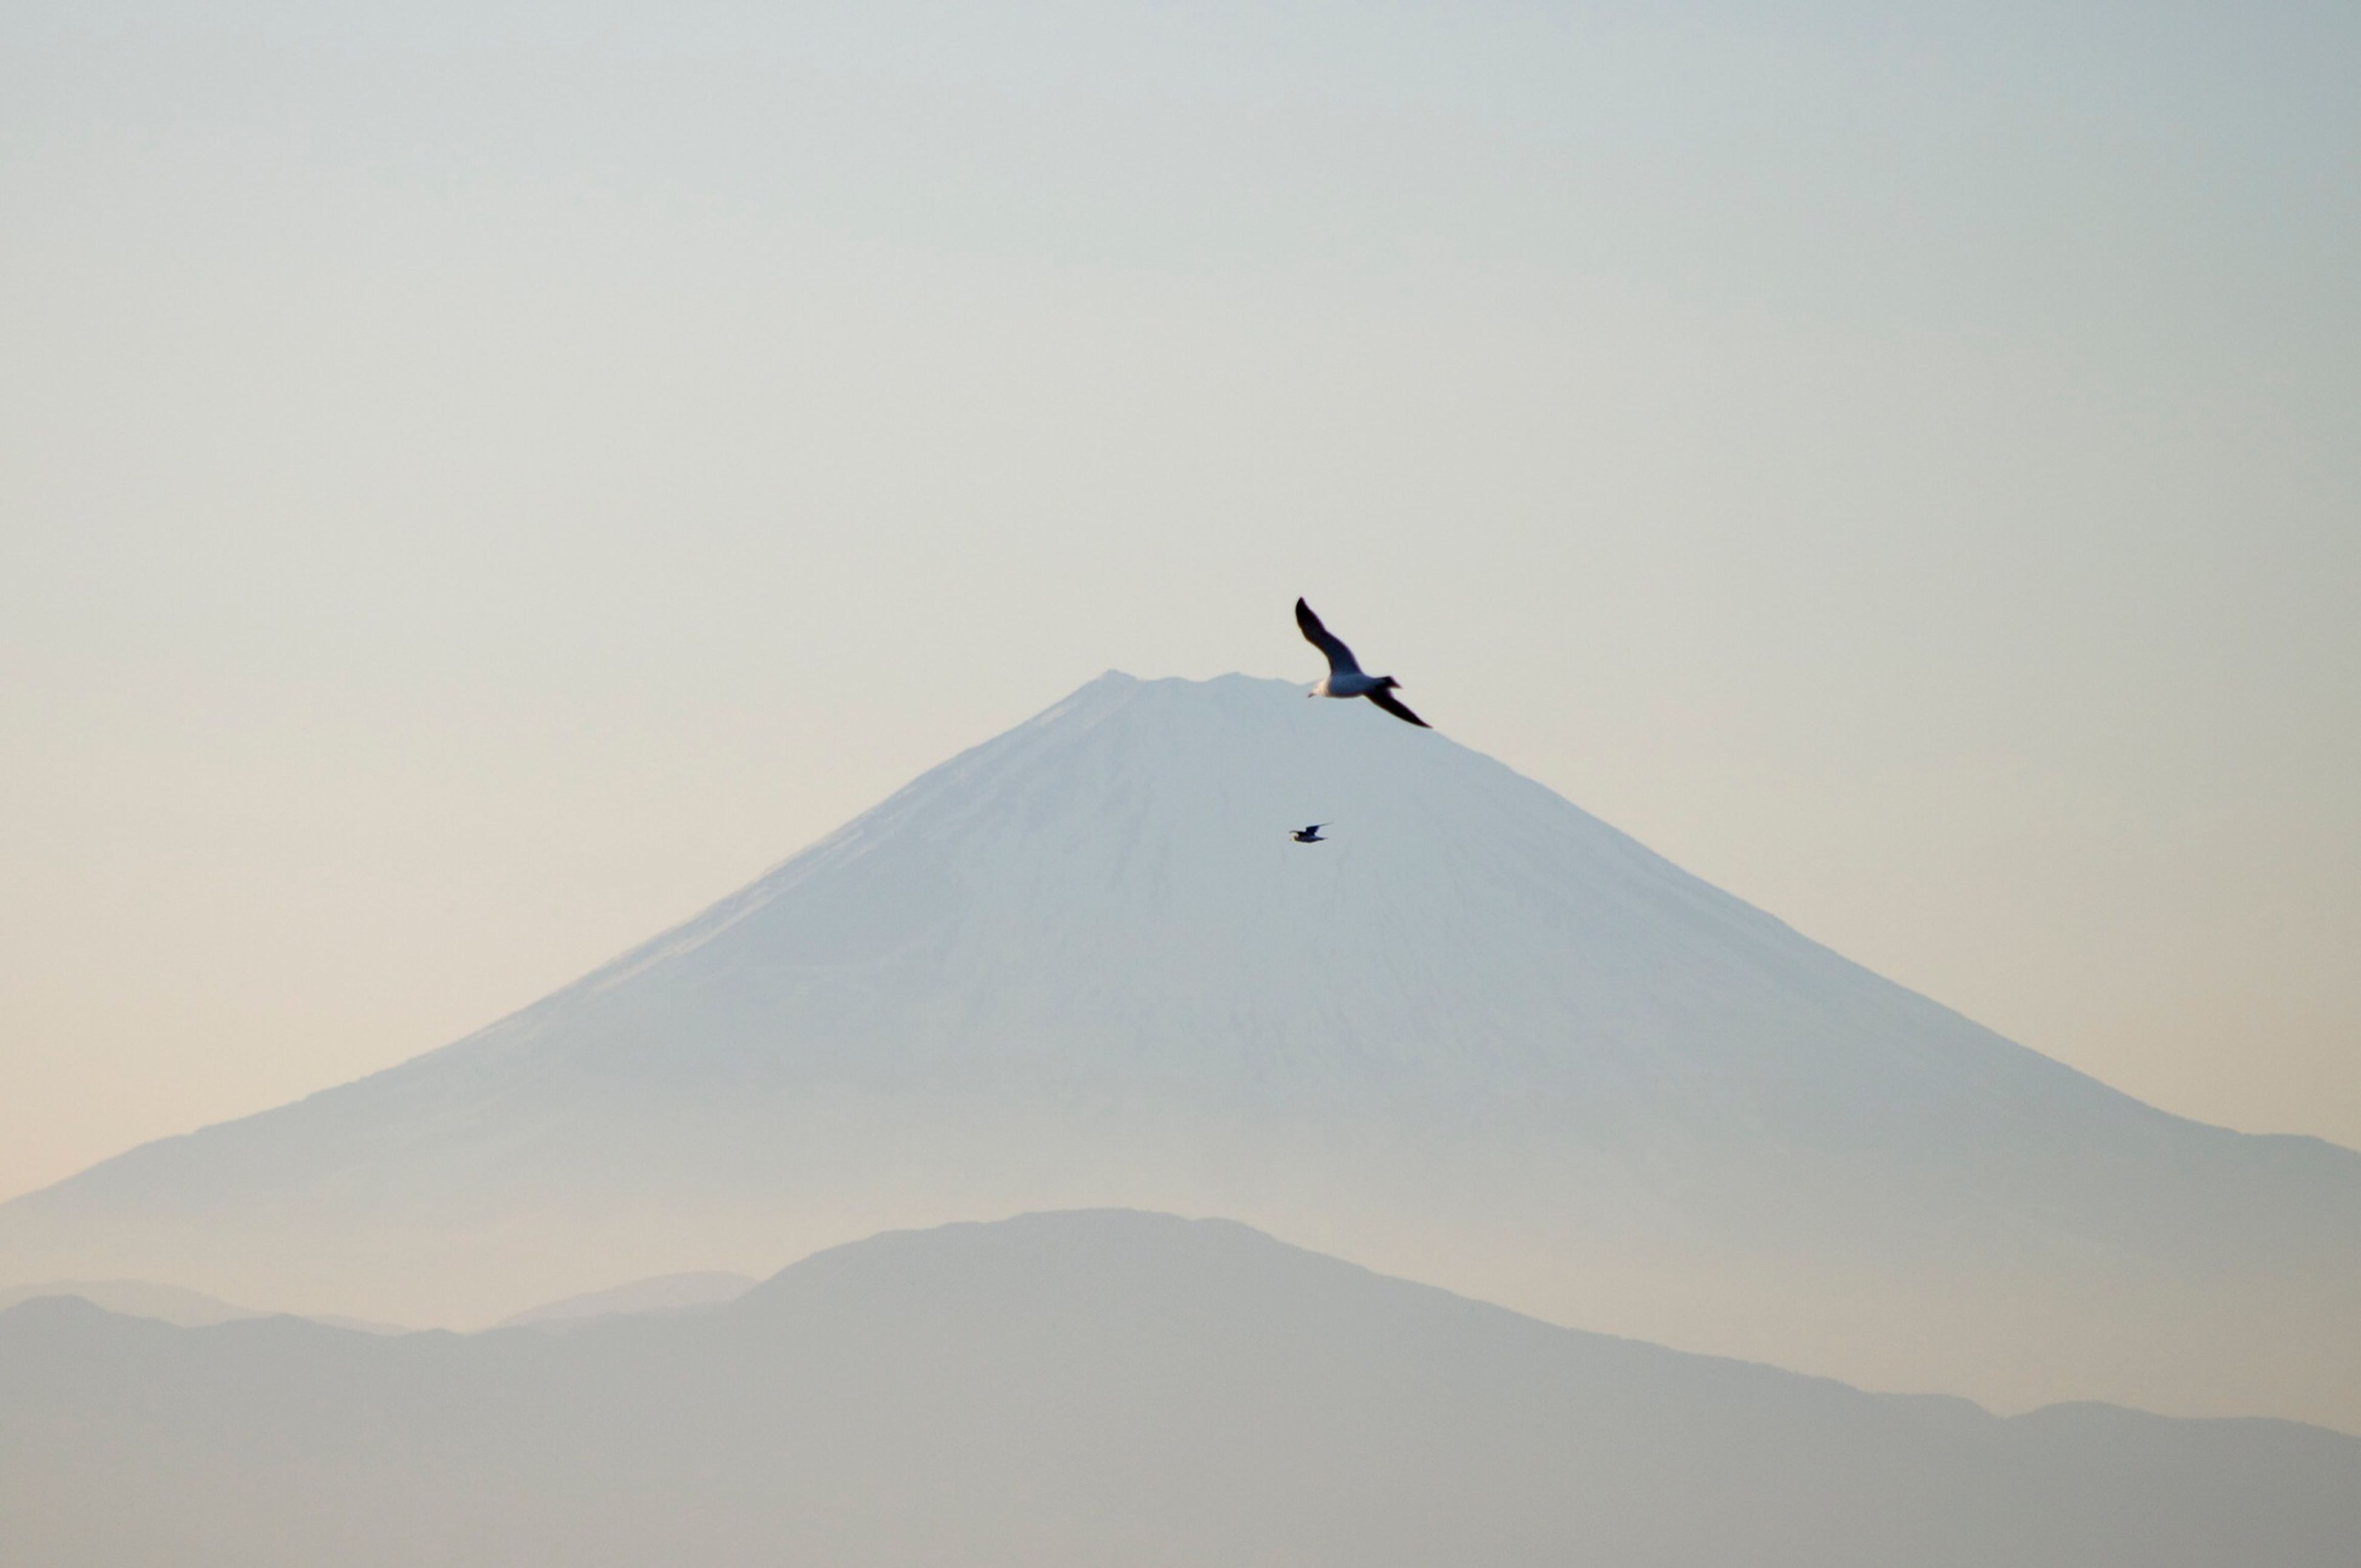 flying, mountain, clear sky, bird, low angle view, copy space, mid-air, nature, scenics, beauty in nature, mountain range, tranquil scene, tranquility, animal themes, sky, day, landscape, outdoors, wildlife